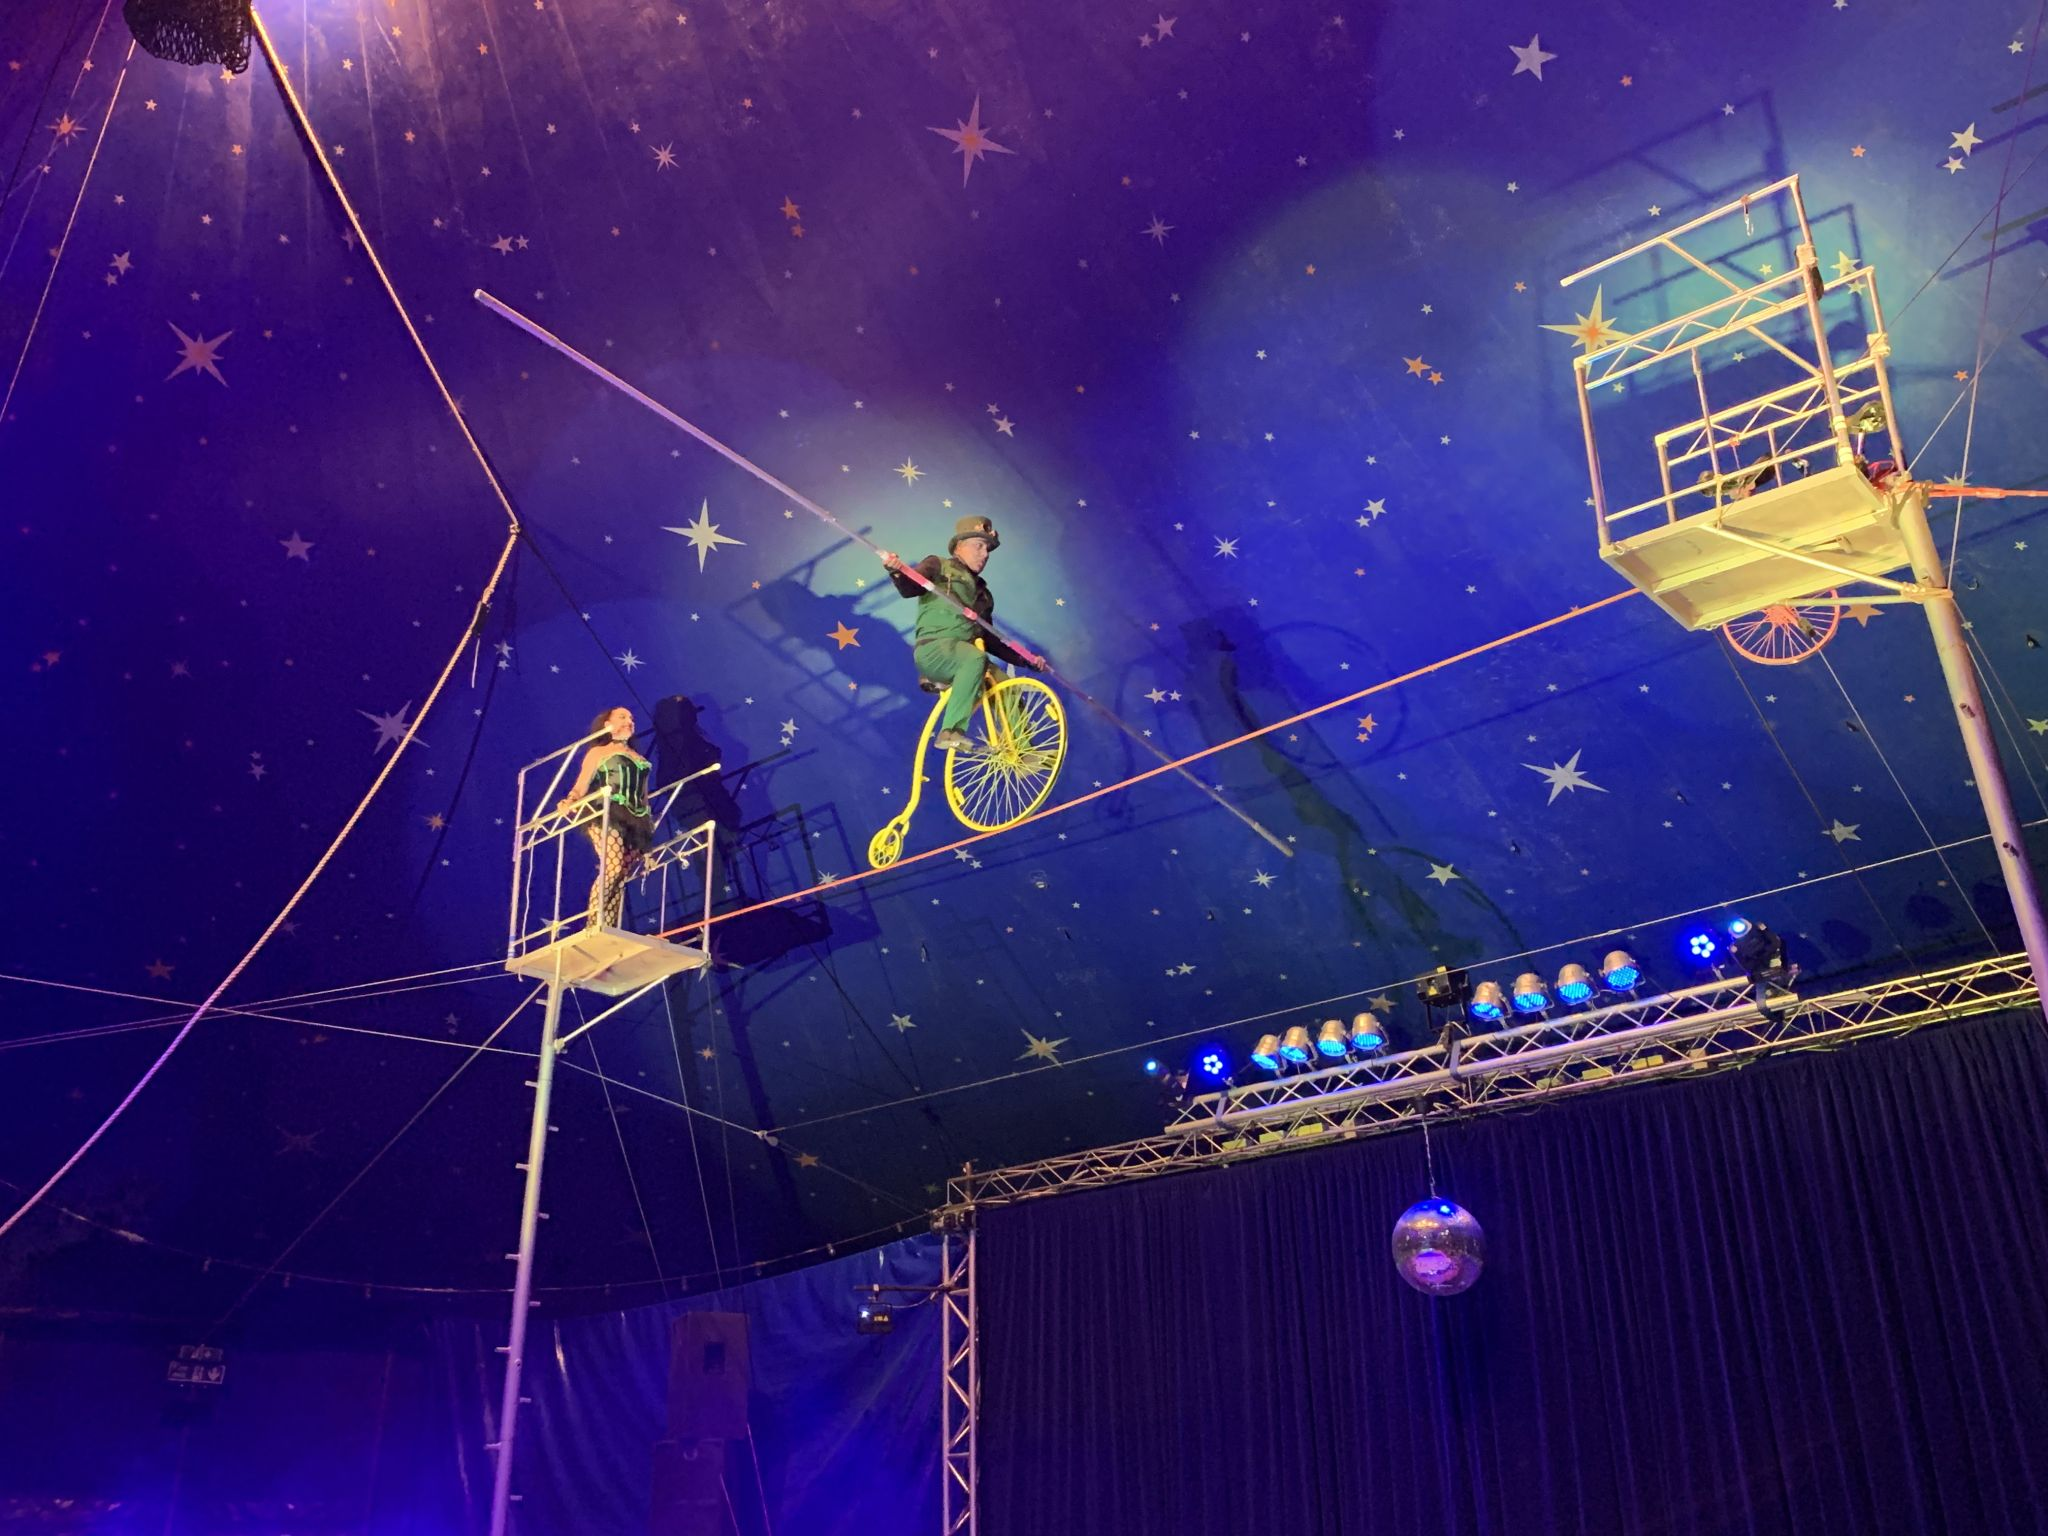 A circus performer riding a unicycle on a tightrope